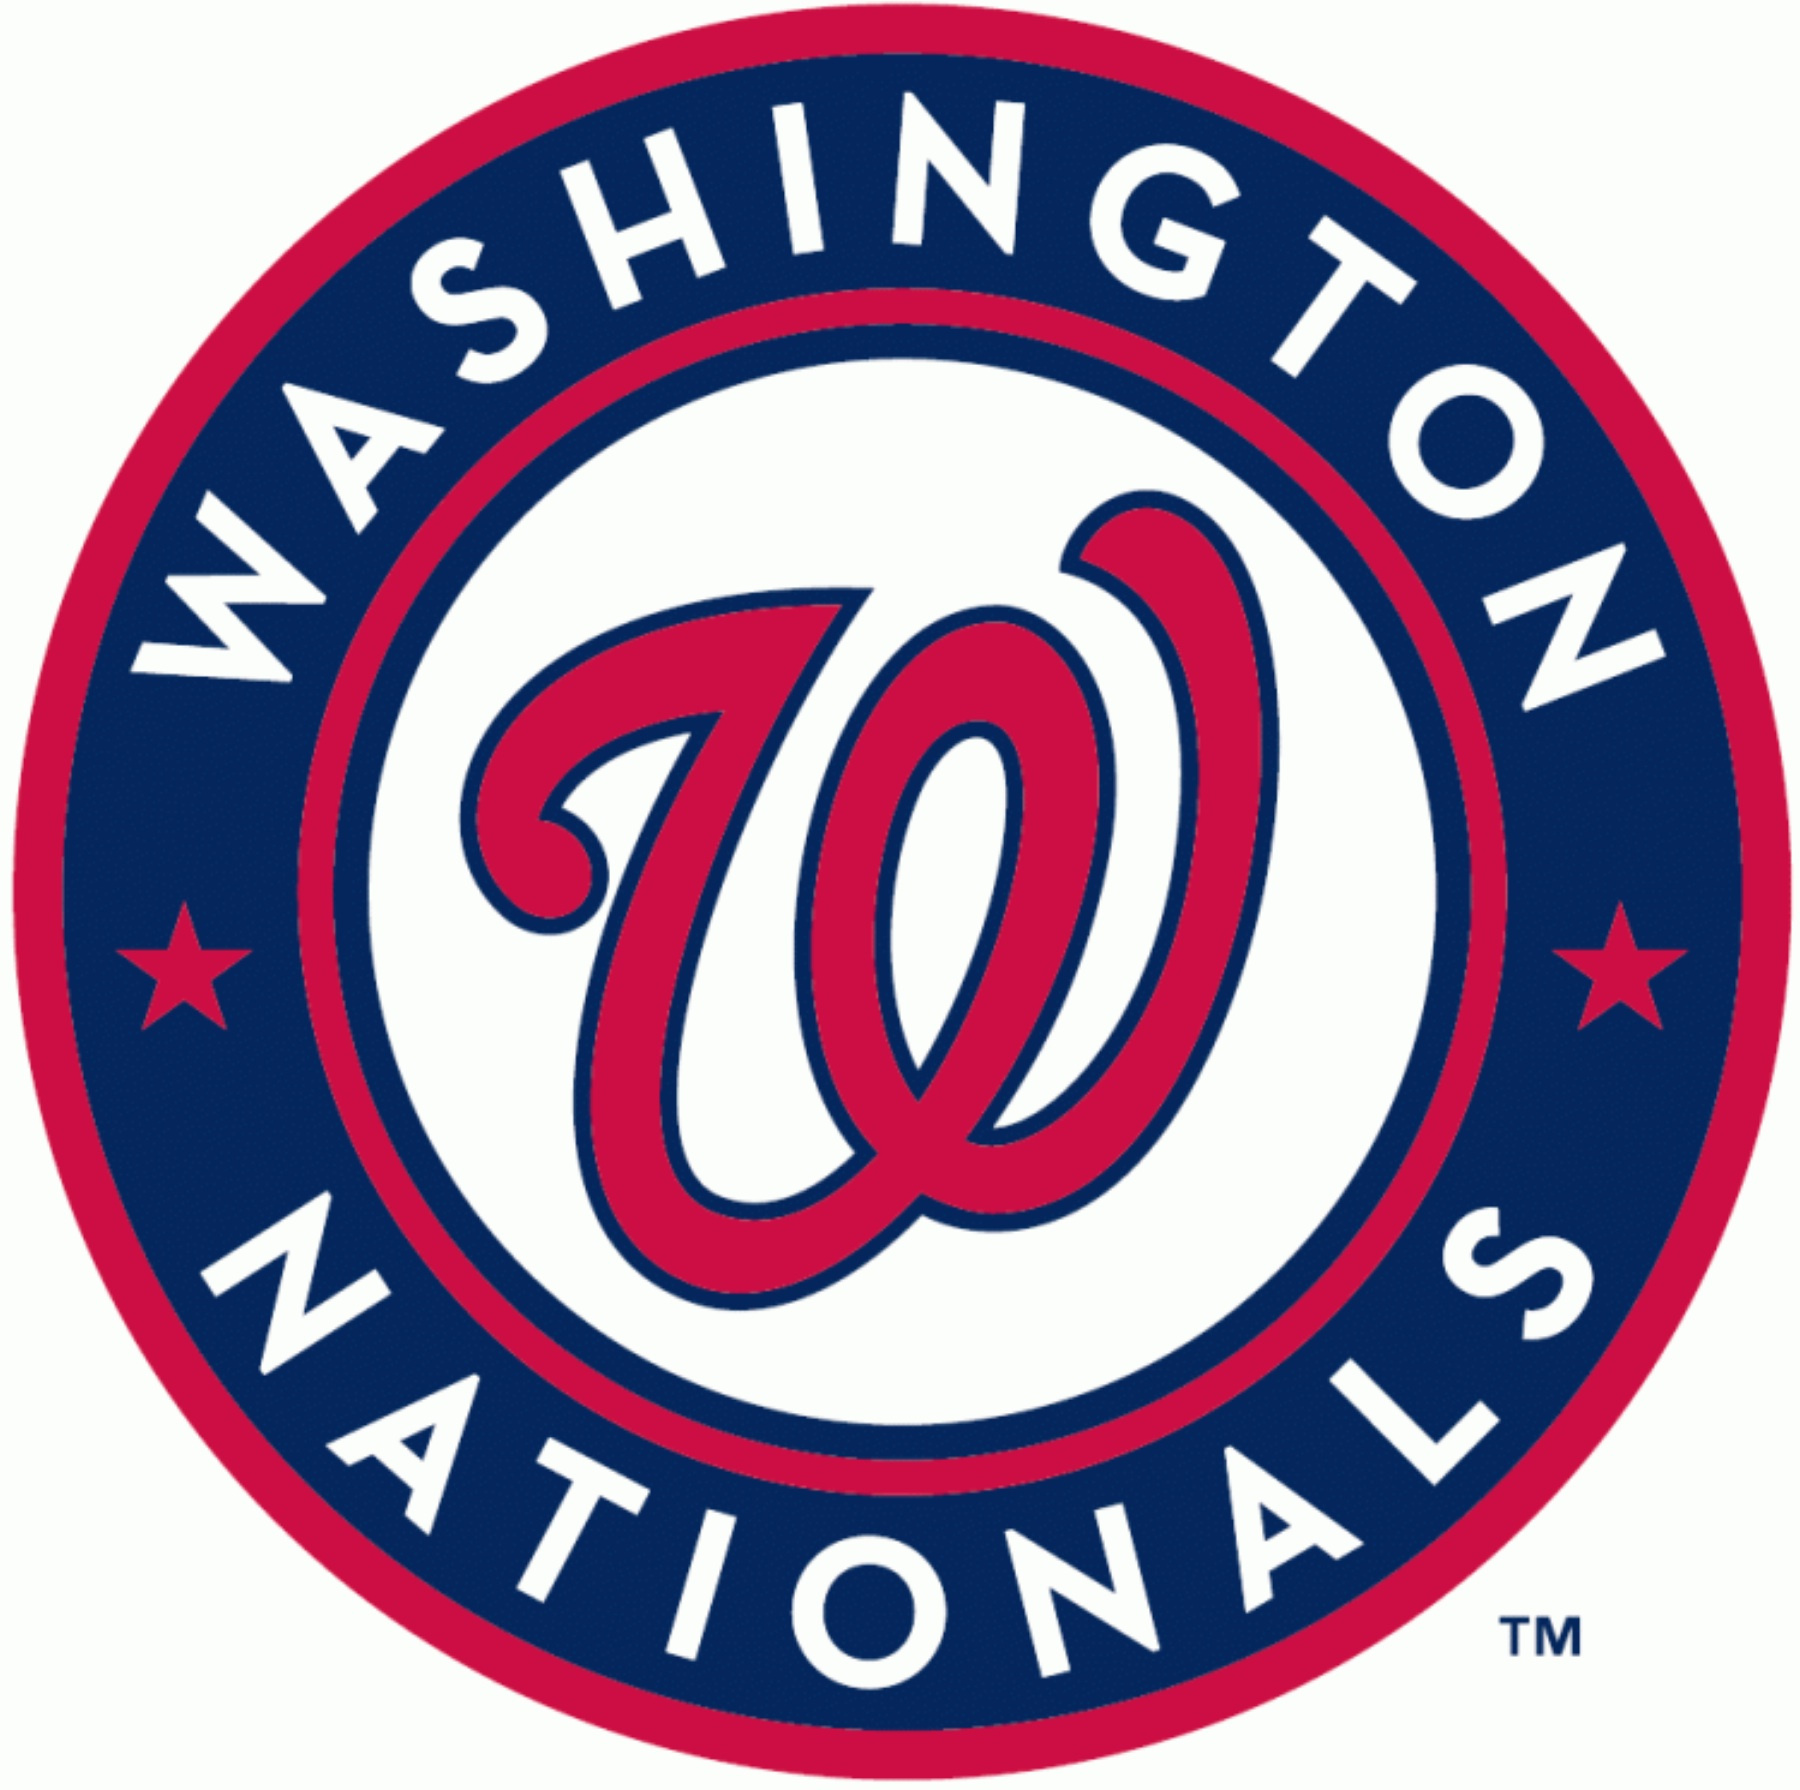 Join us for the Washington Nationals vs Baltimore Orioles